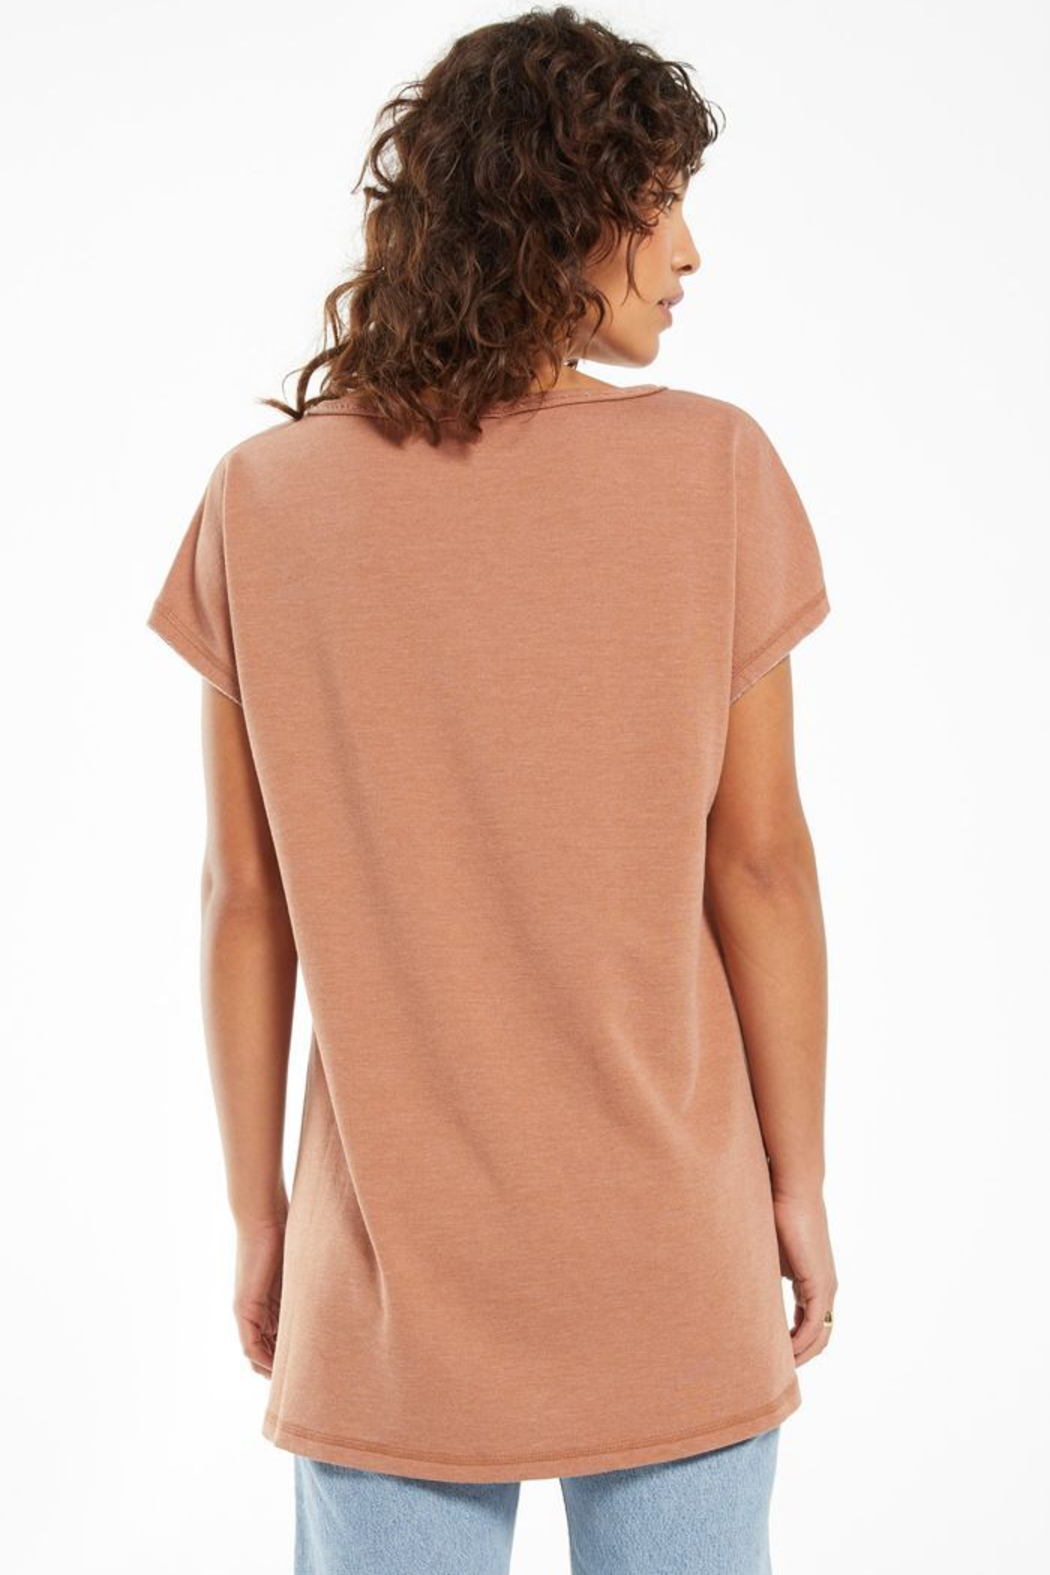 z supply Z Supply Frankie Tunic Tee - Vintage Brown - Front Full Image